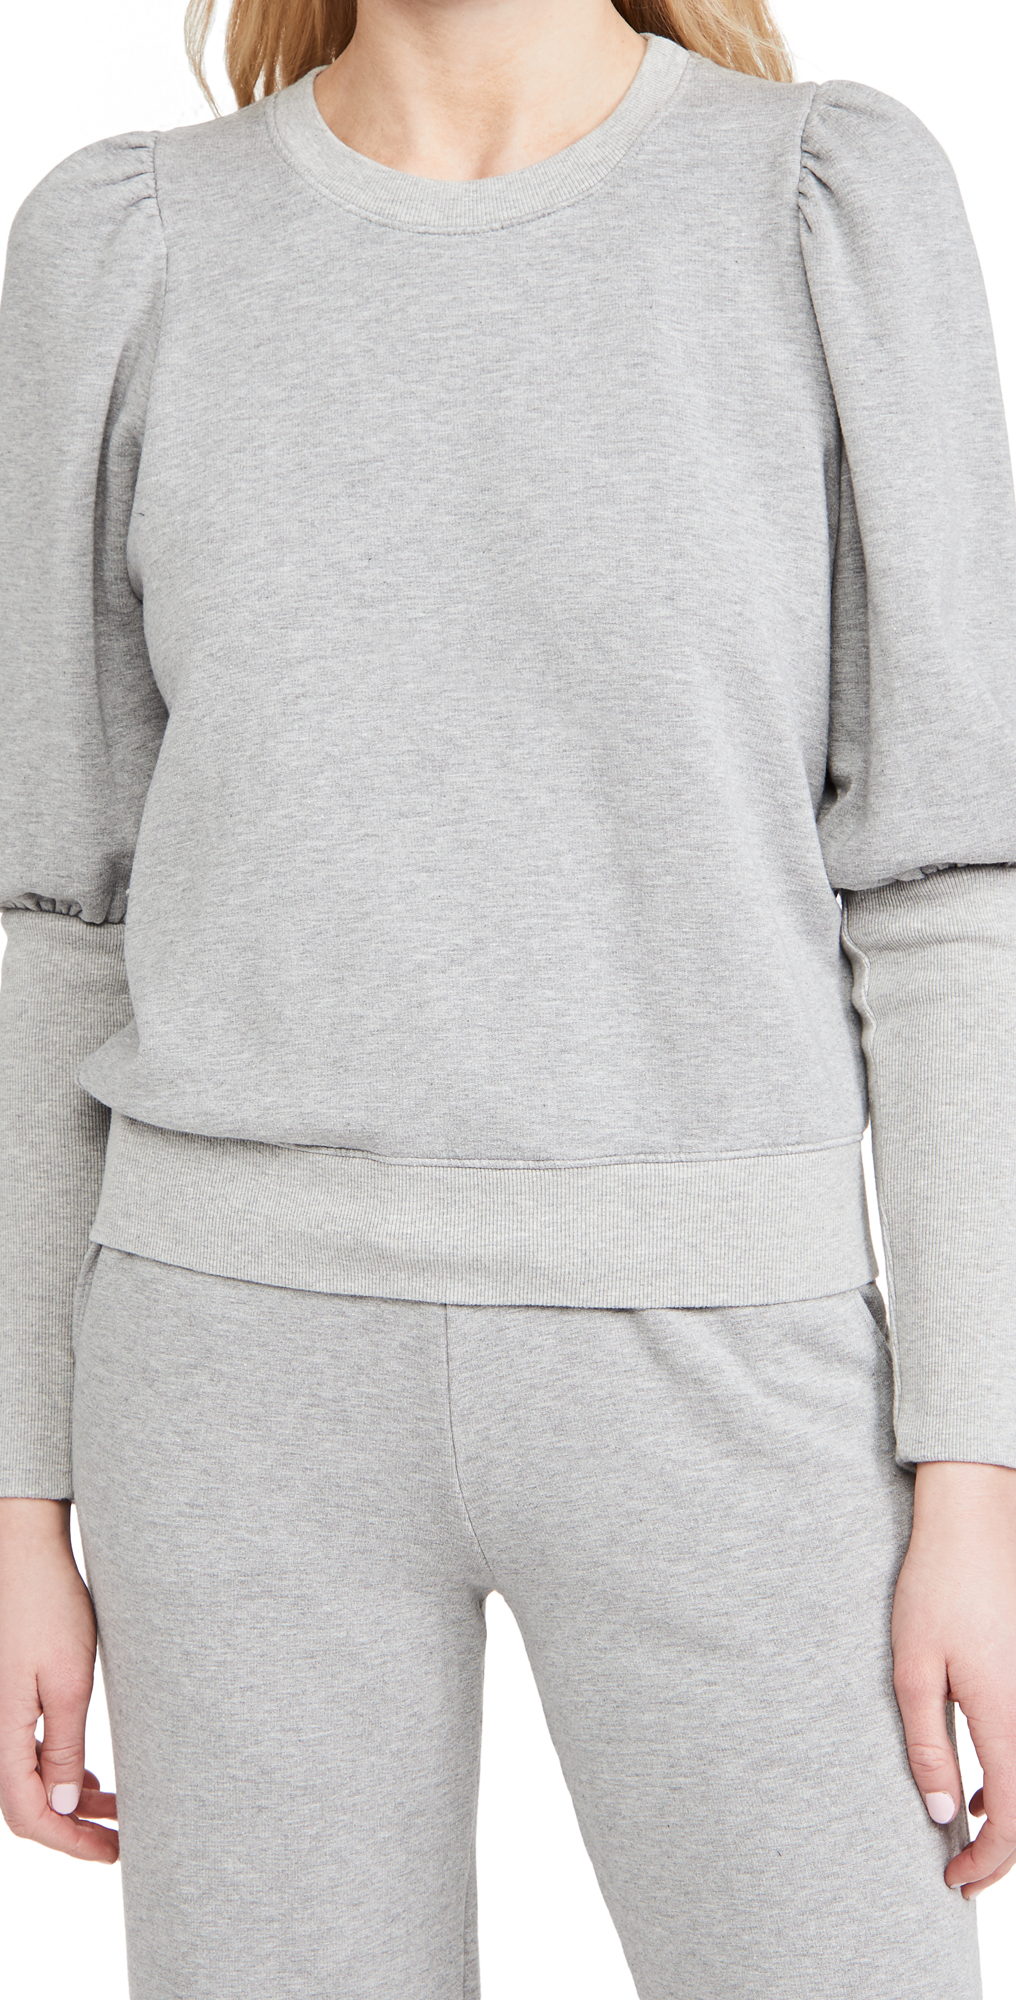 SUNDRY Puffed Shoulder Sweatshirt